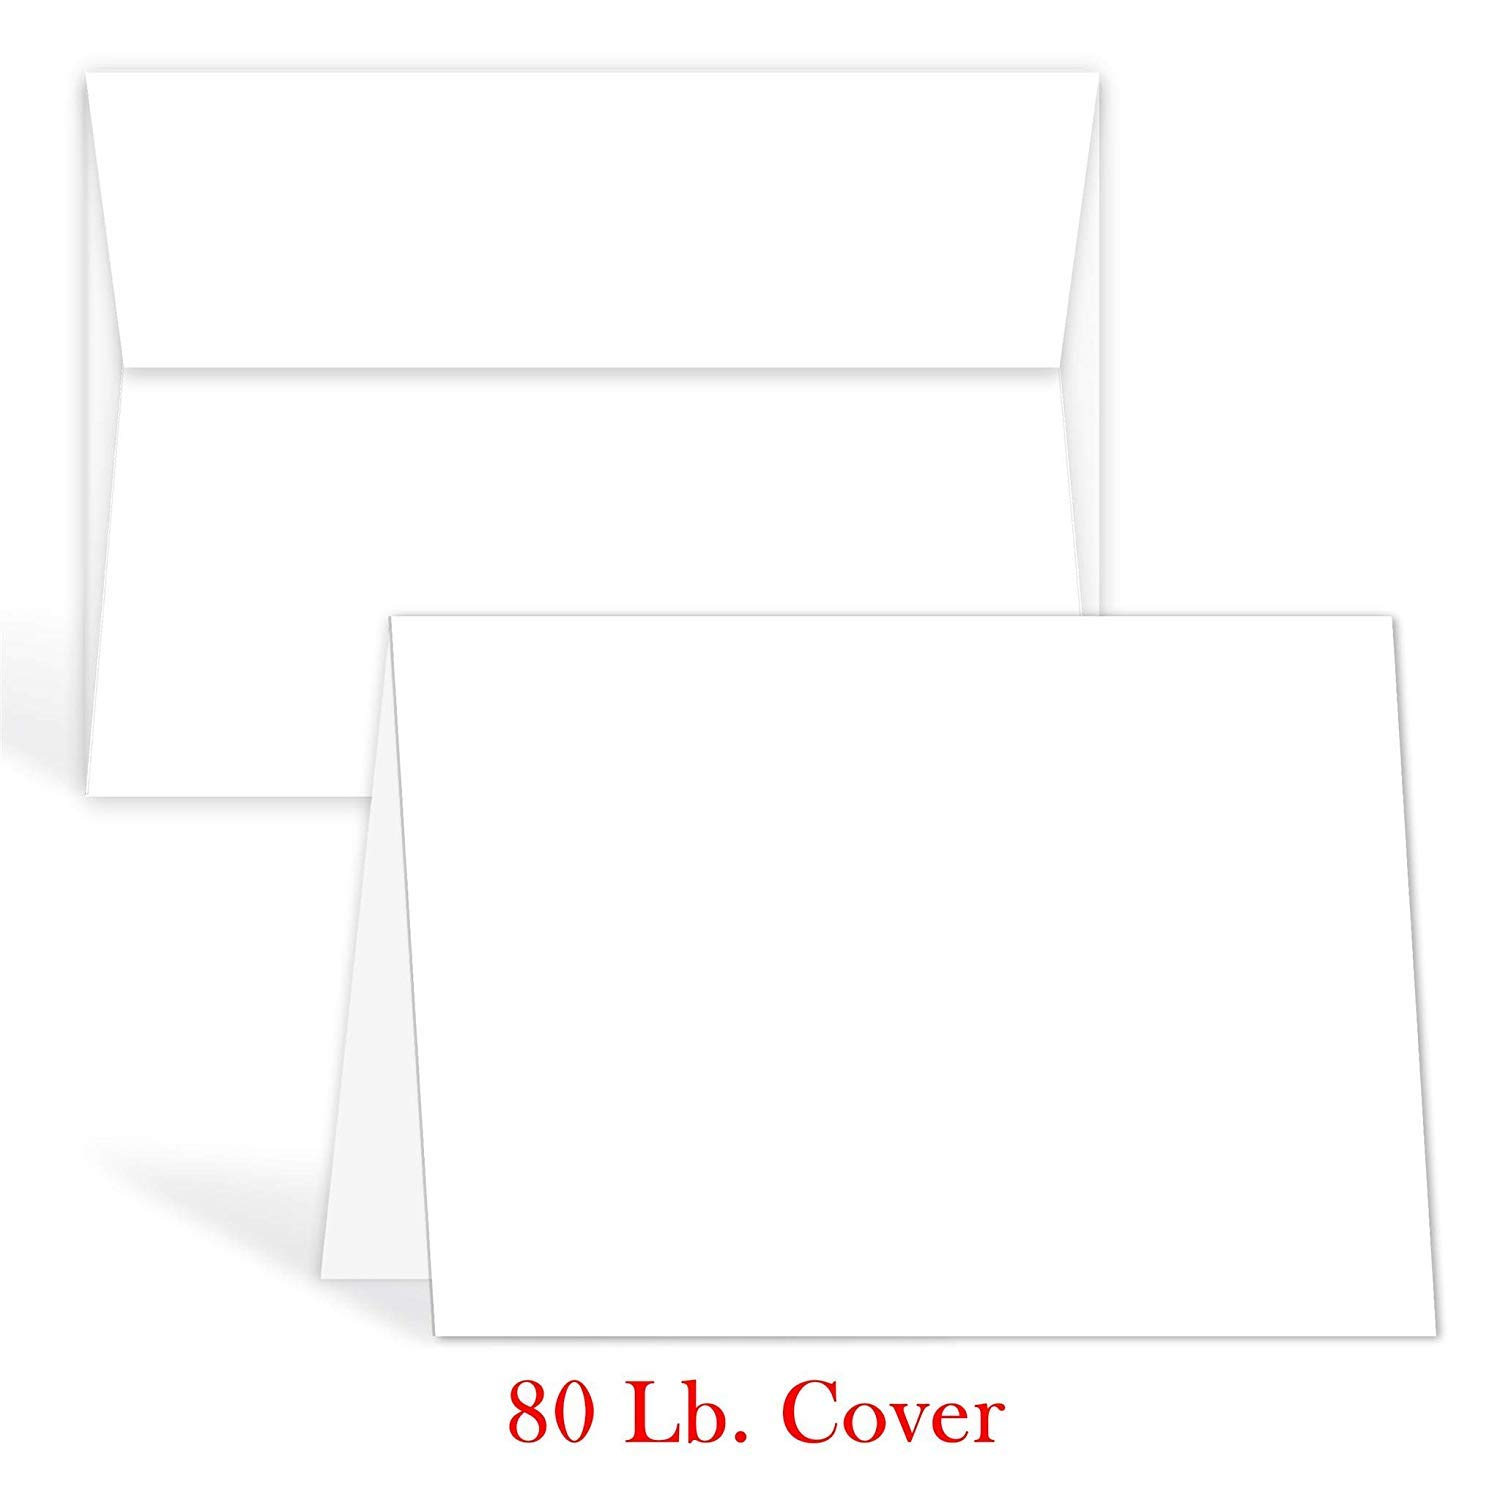 NEW CARD MAKING VALUE PACK OF IVORY BLANK CARDS /& MATCHING ENVELOPES 25 of each!